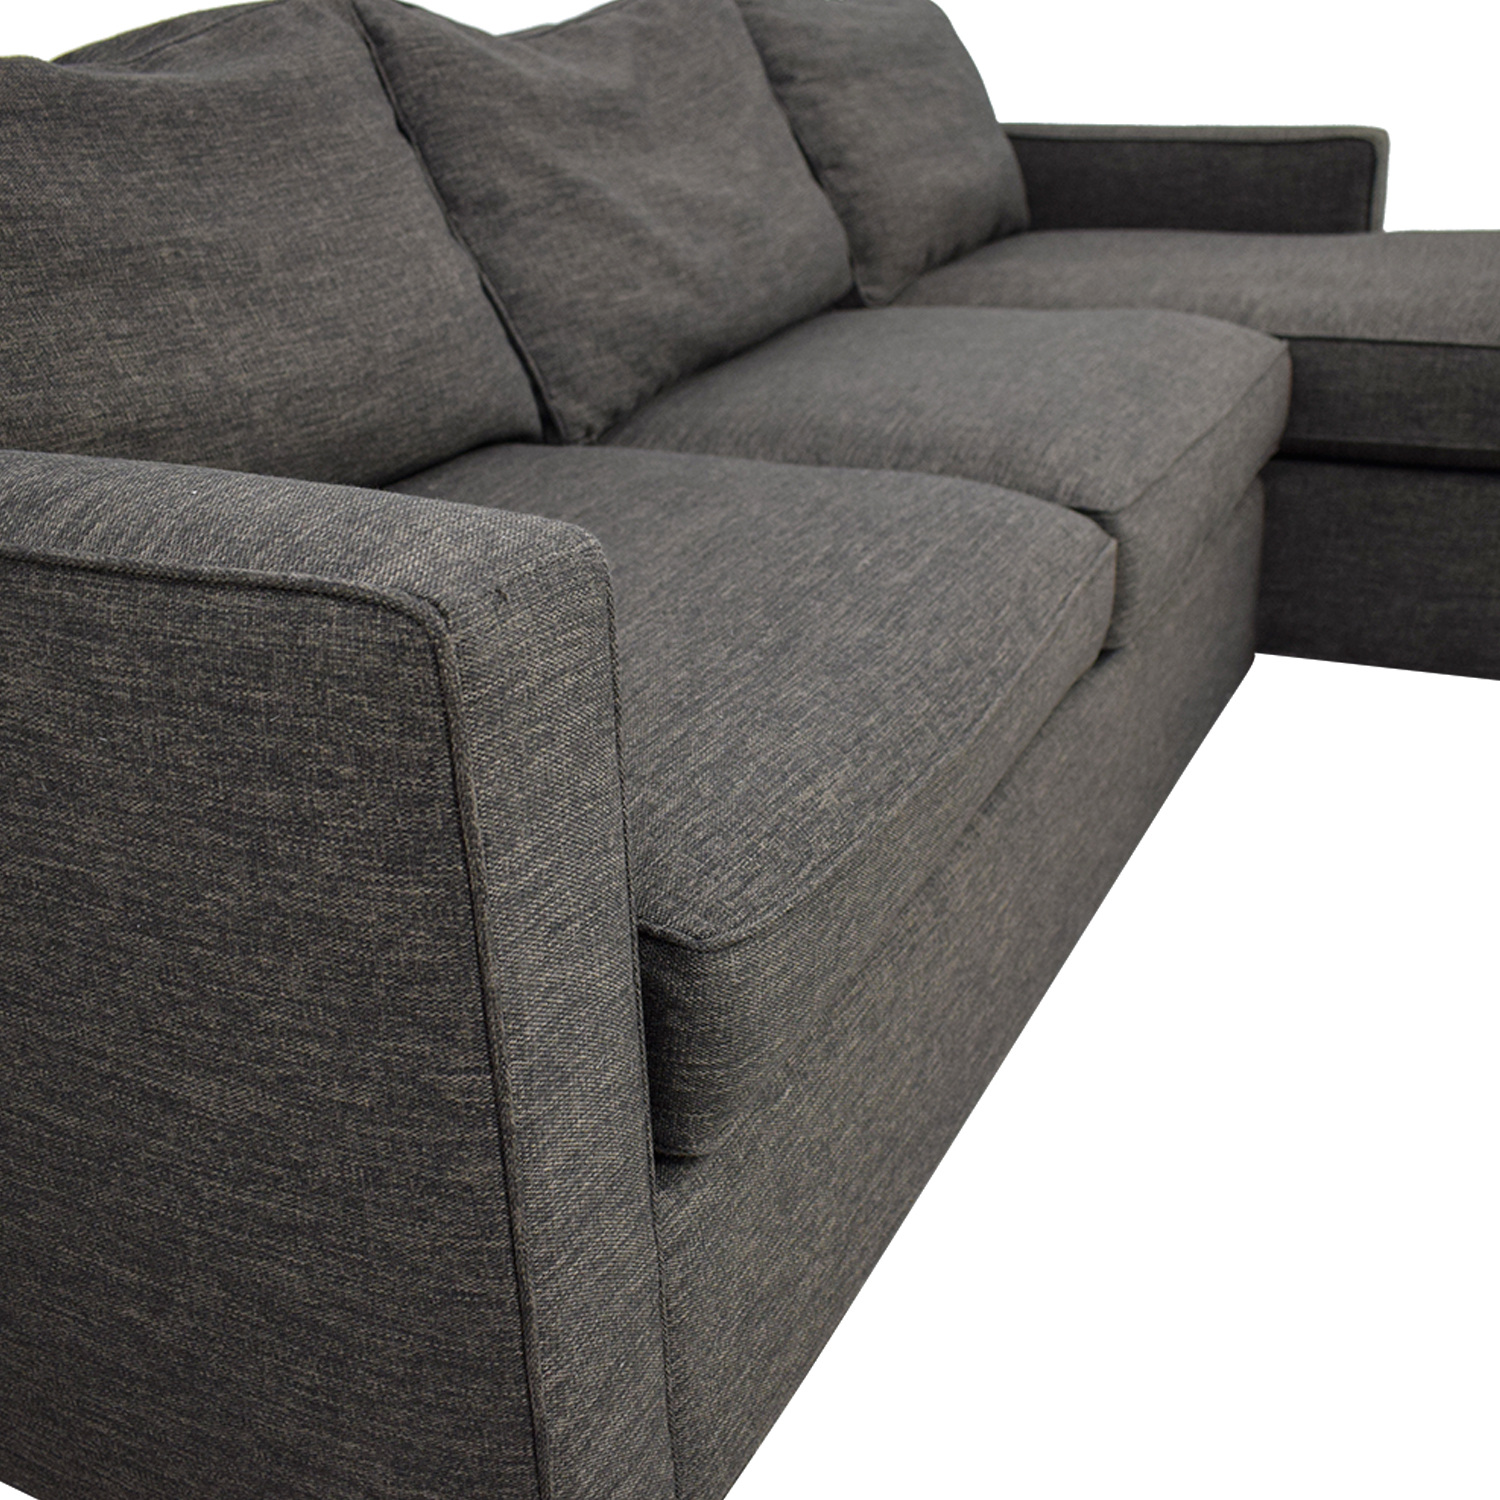 Brilliant 72 Off Crate Barrel Crate Barrel Davis Sectional Sofas Gmtry Best Dining Table And Chair Ideas Images Gmtryco